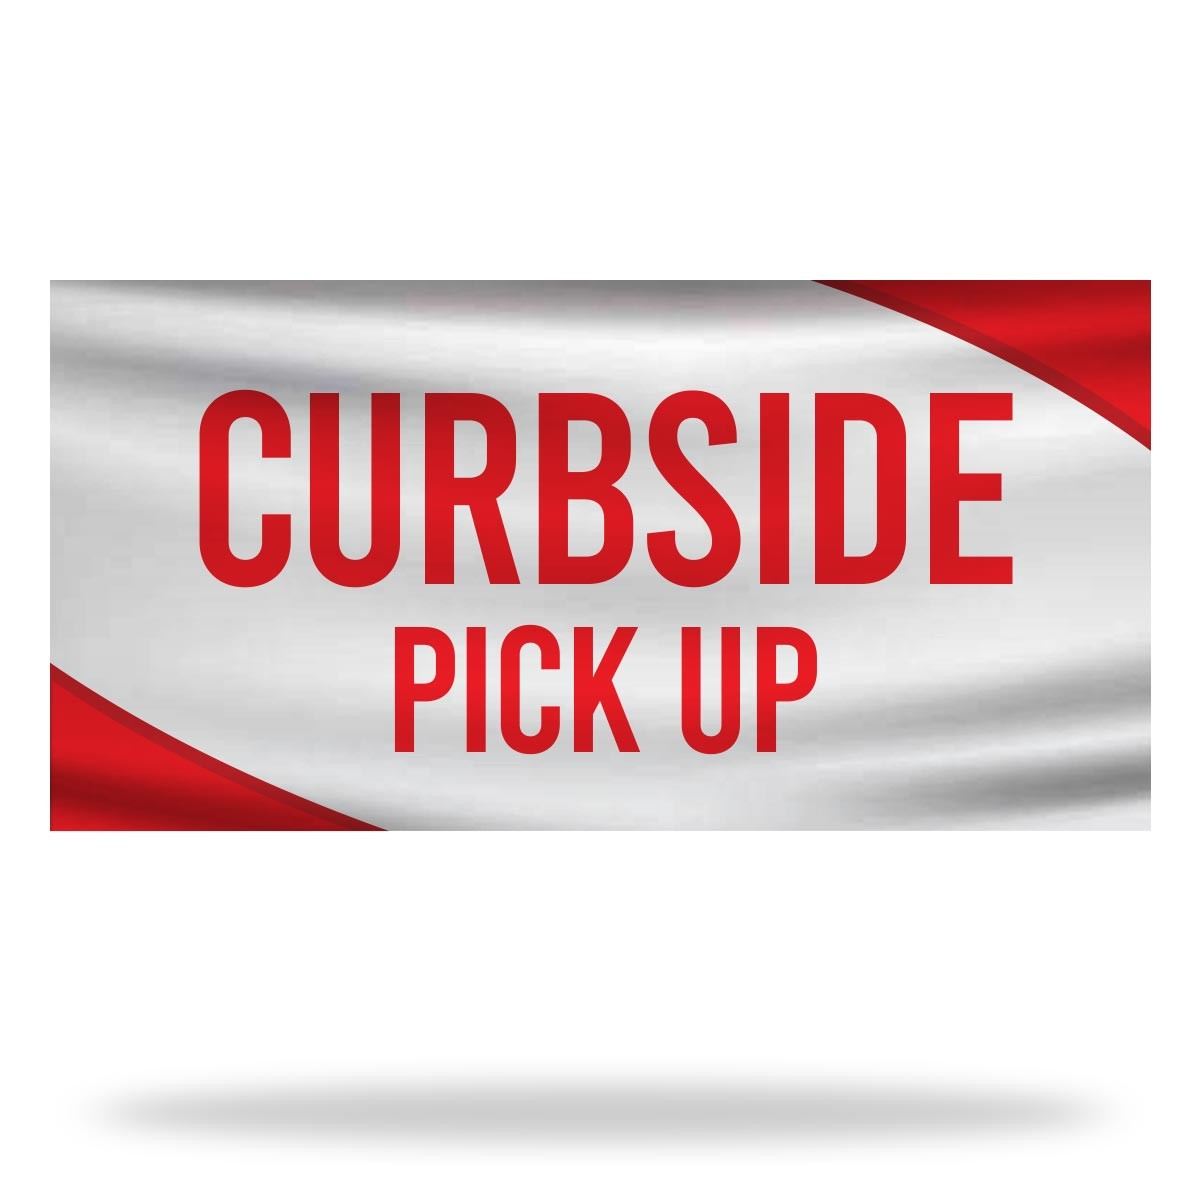 Curbside Pickup Flags & Banners Design 03